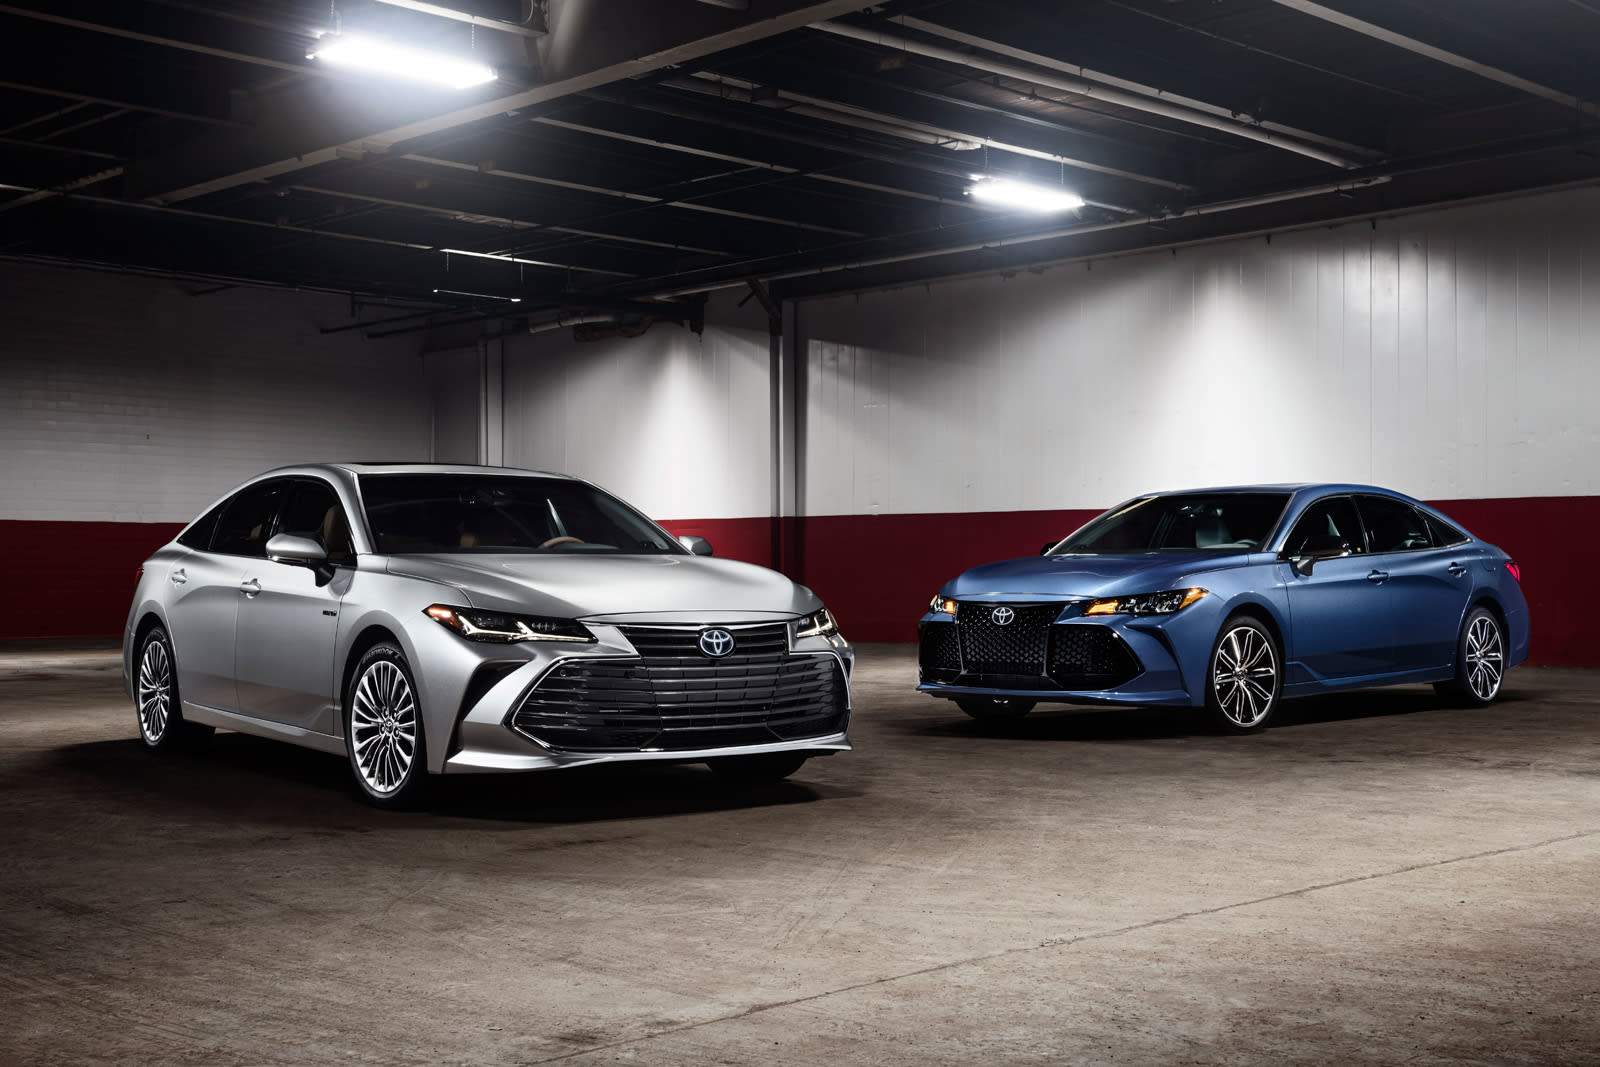 Toyota caves to pressure and adds CarPlay to new models